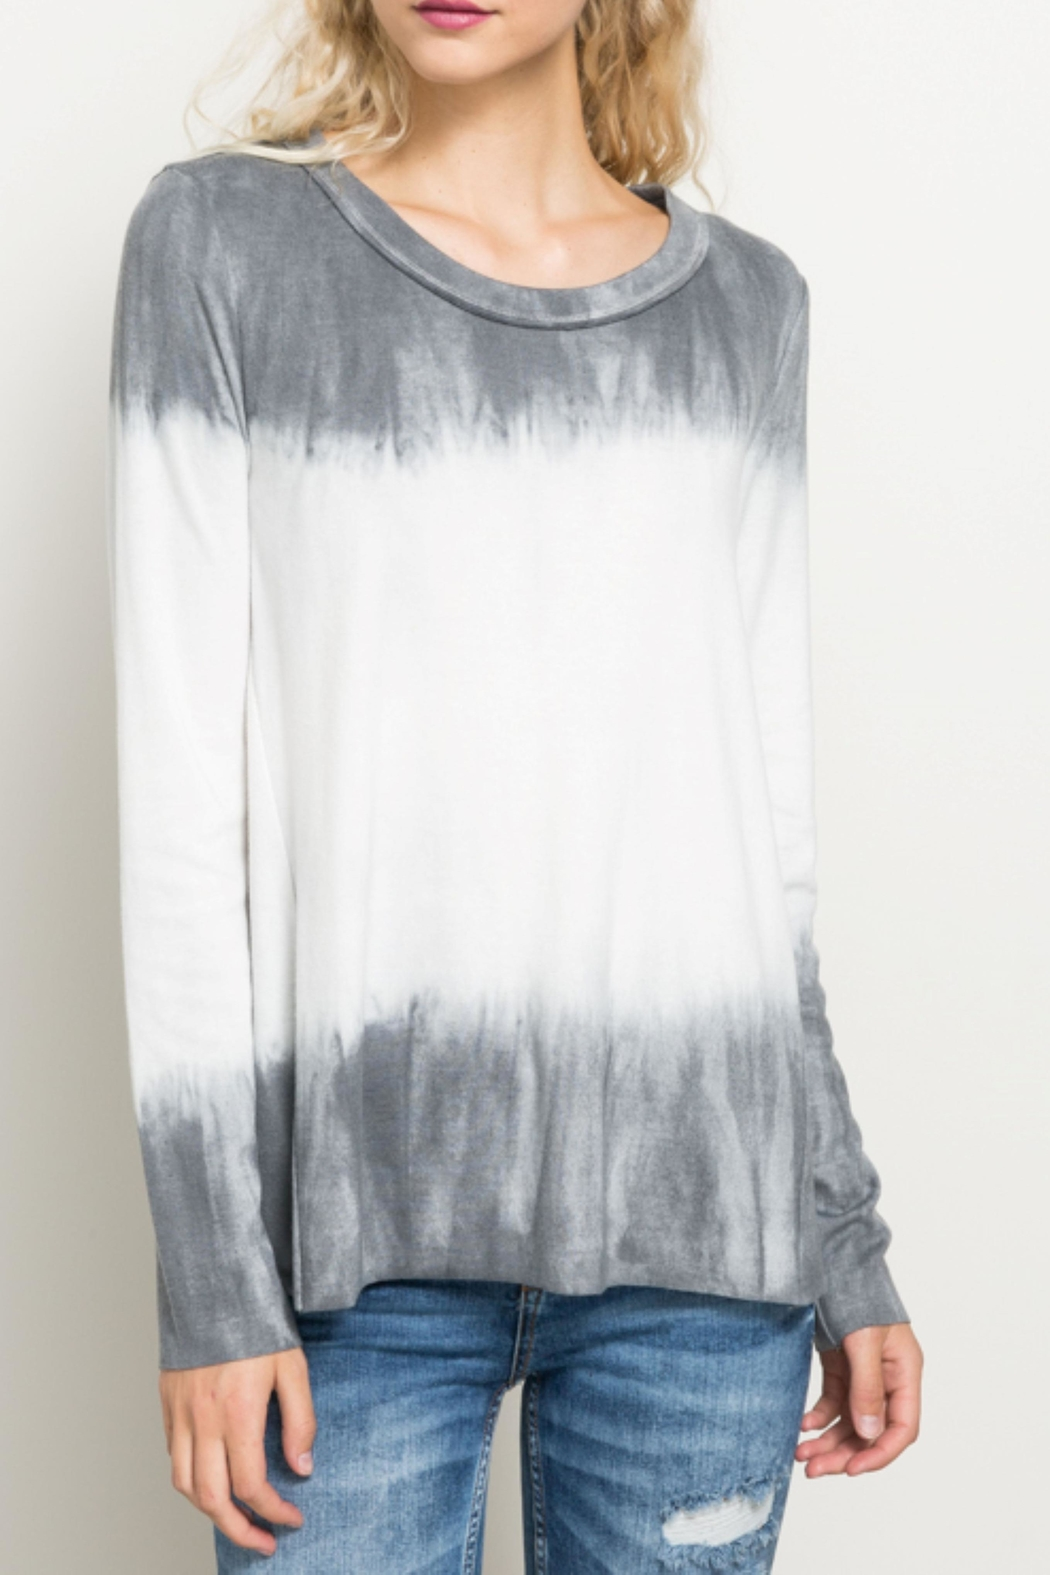 Hem & Thread Tiedye Ombre Top - Main Image